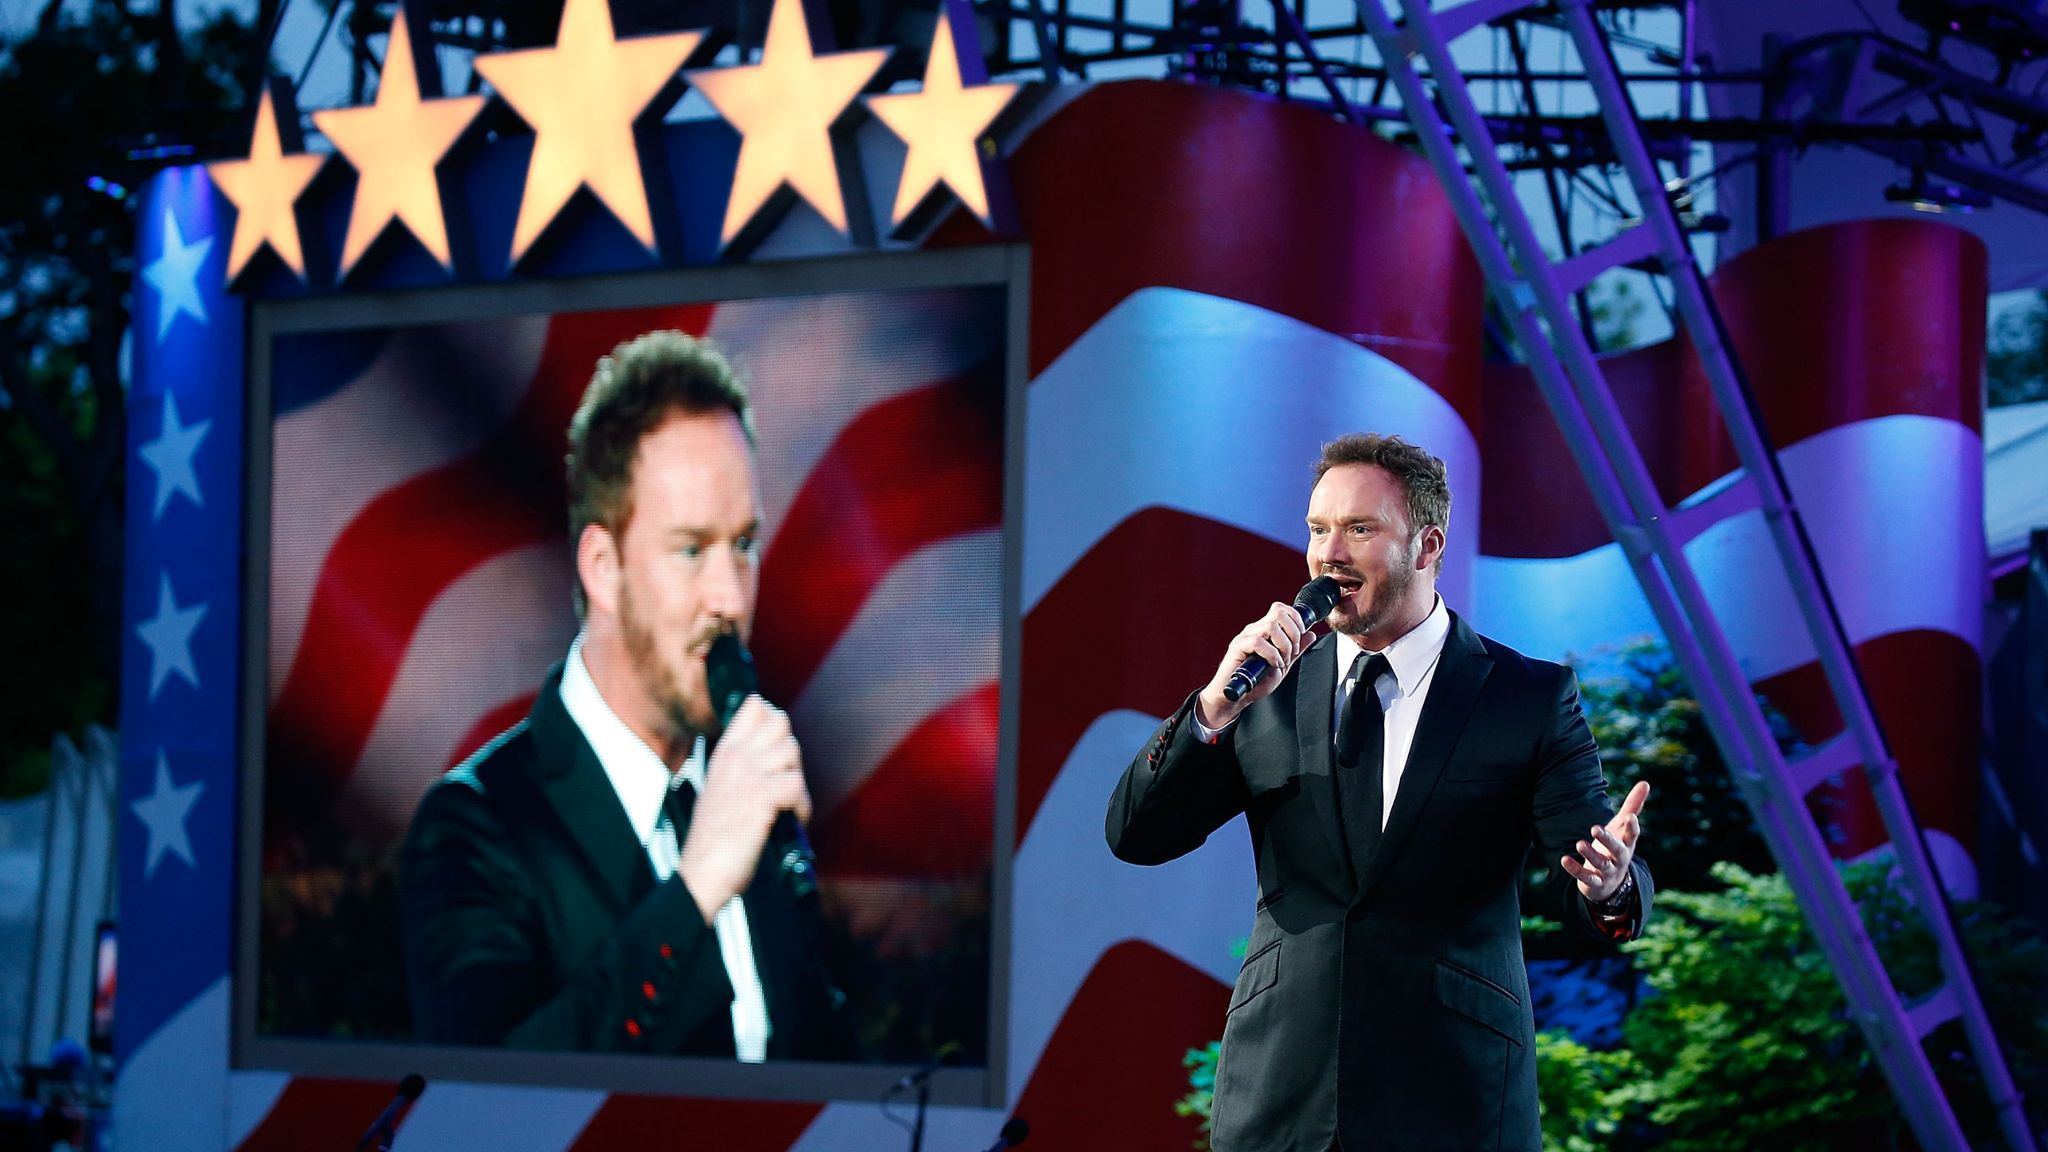 Singing at the National Memorial Day Concert in Washington in 2017